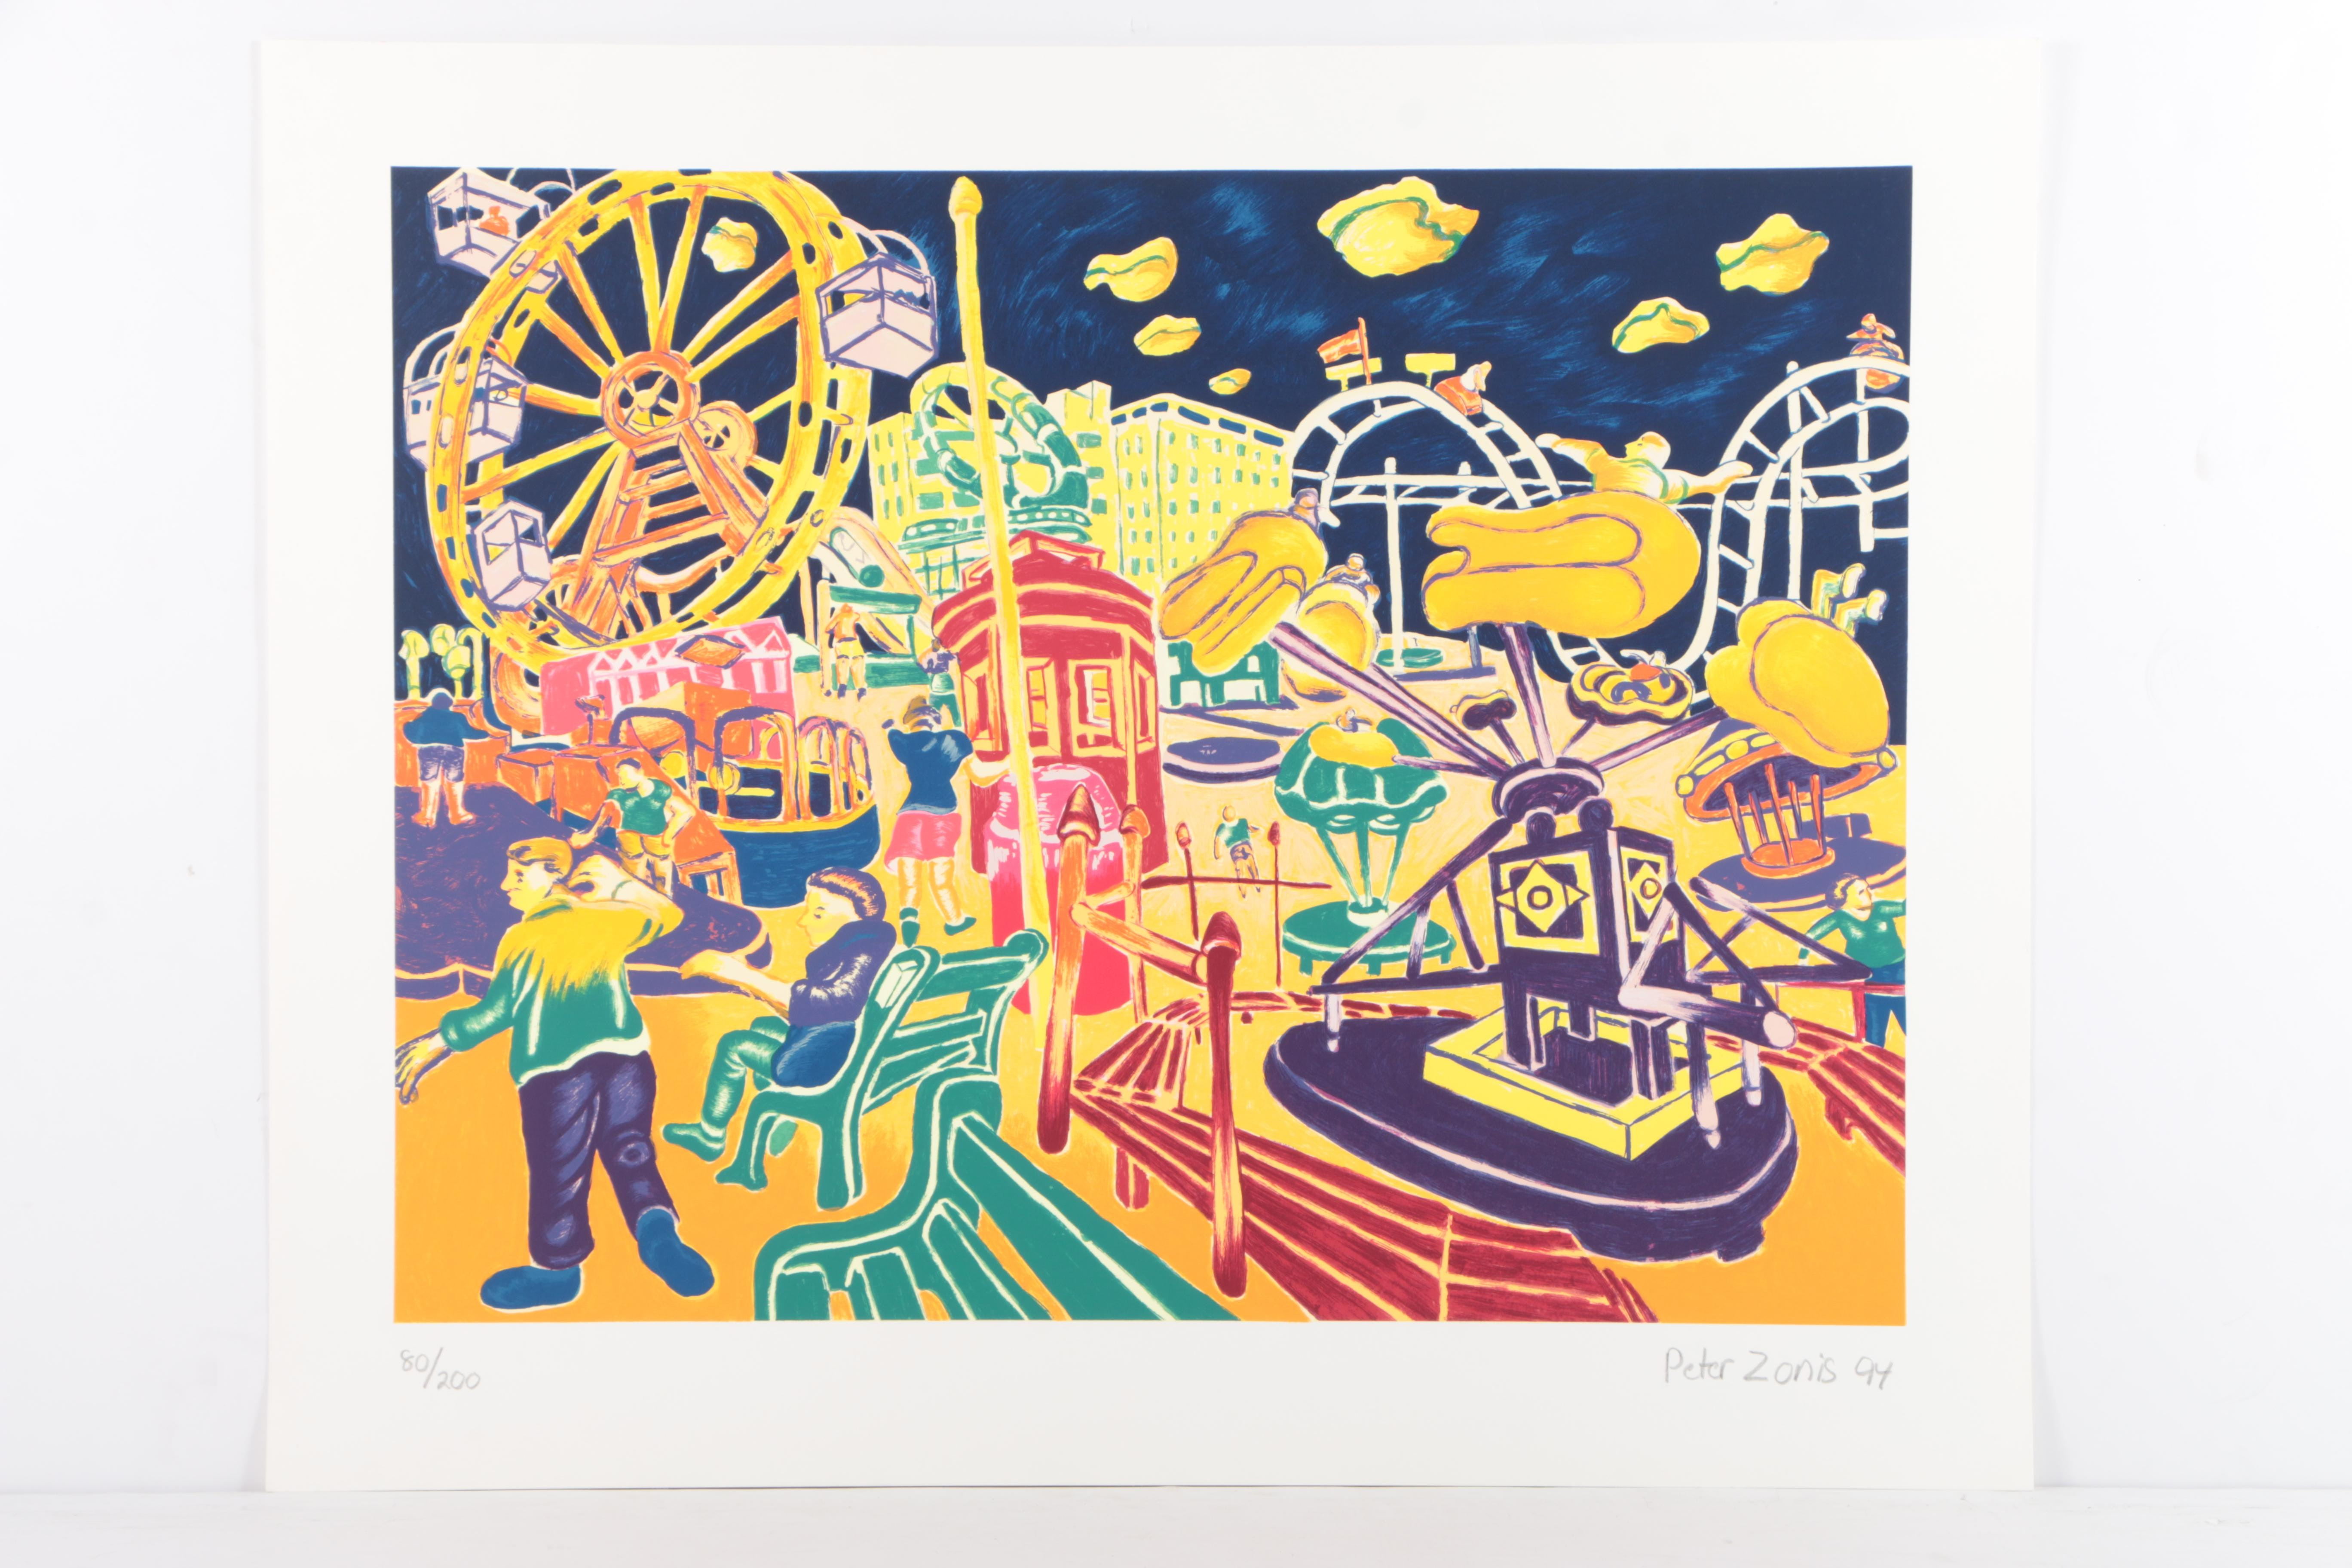 Peter Zonis Limited Edition Serigraph on Paper of Carnival